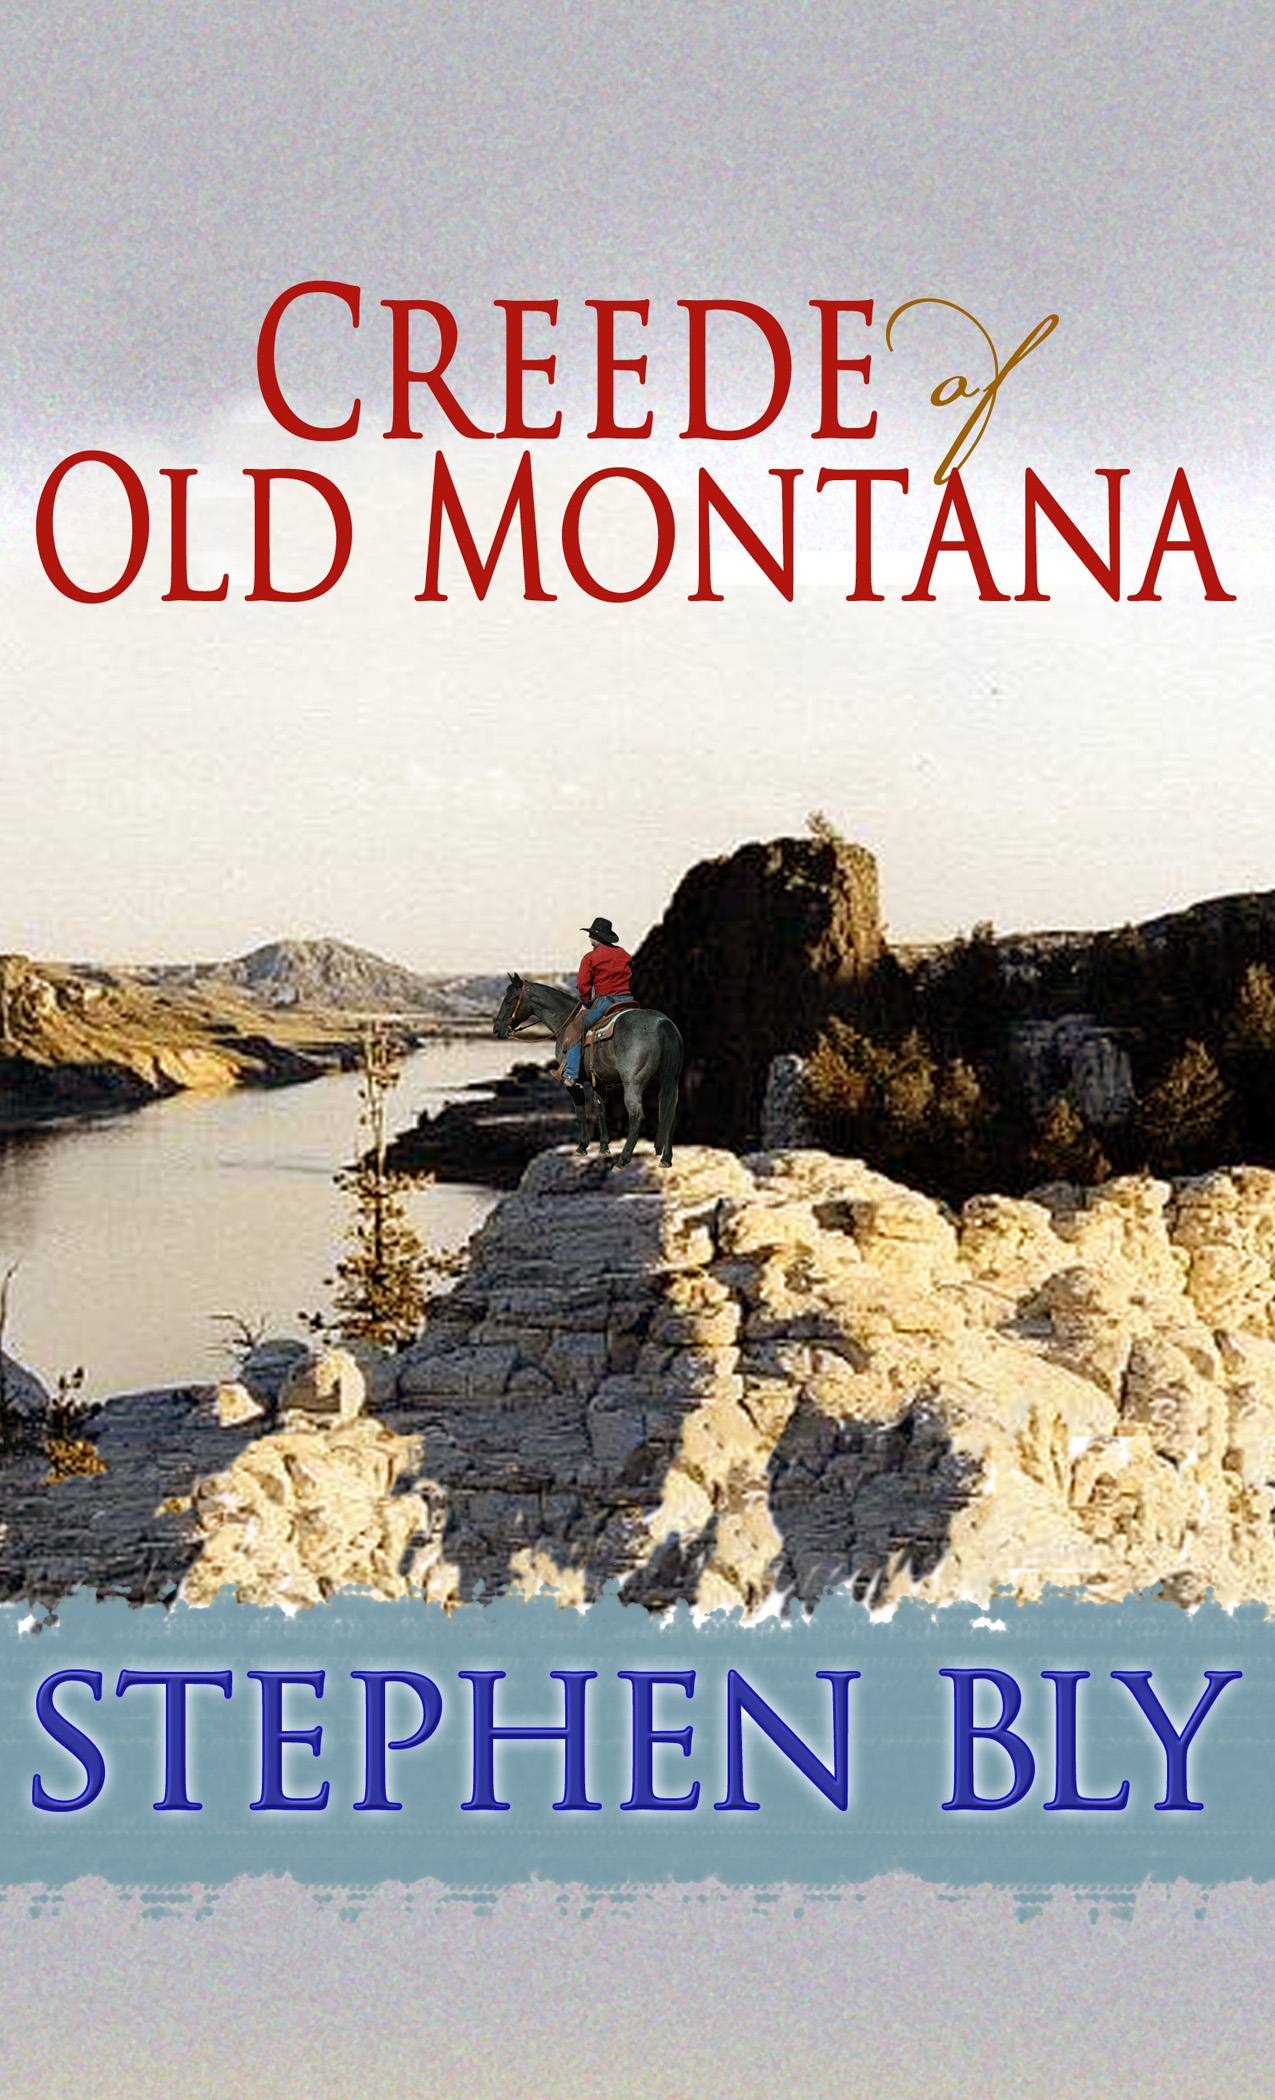 Creede of Old Montana – historical western romance novel